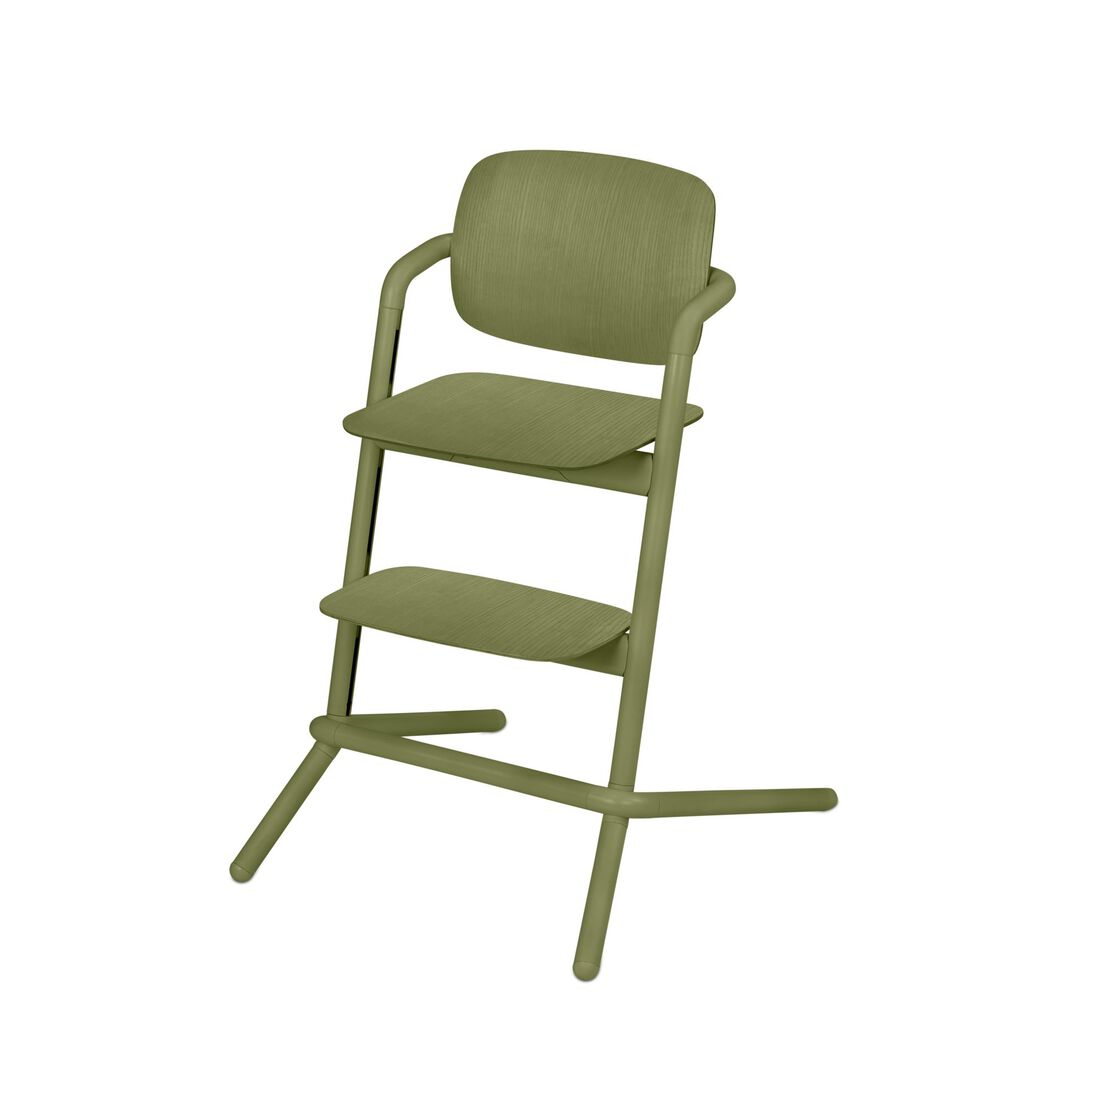 CYBEX Lemo Hochstuhl - Outback Green (Wood) in Outback Green (Wood) large Bild 1